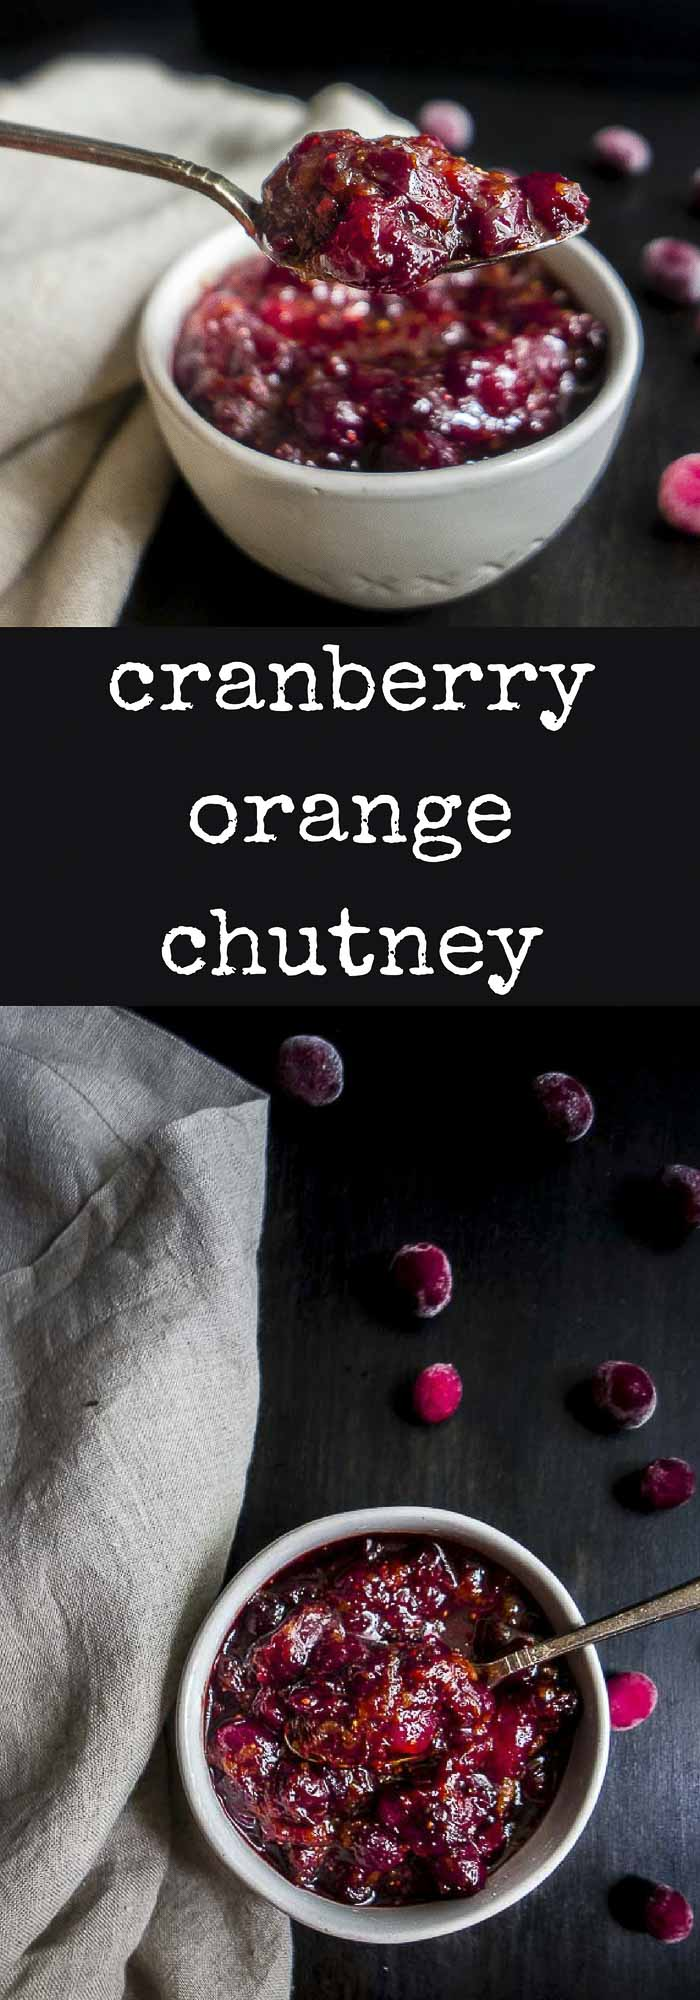 This 20 Minute Cranberry Orange Chutney recipe has the perfect combination of sweet, tart and savory flavors for a delicious condiment! #thanksgivingrecipes #cranberries, #frozencranberries, #cranberriesforallseasons orange cranberry sauce | orange cranberry chutney | cranberry ginger chutney | cranberry relish | cranberry jam | cranberry sauce | cranberry chutney | holiday recipes | thanksgiving recipes